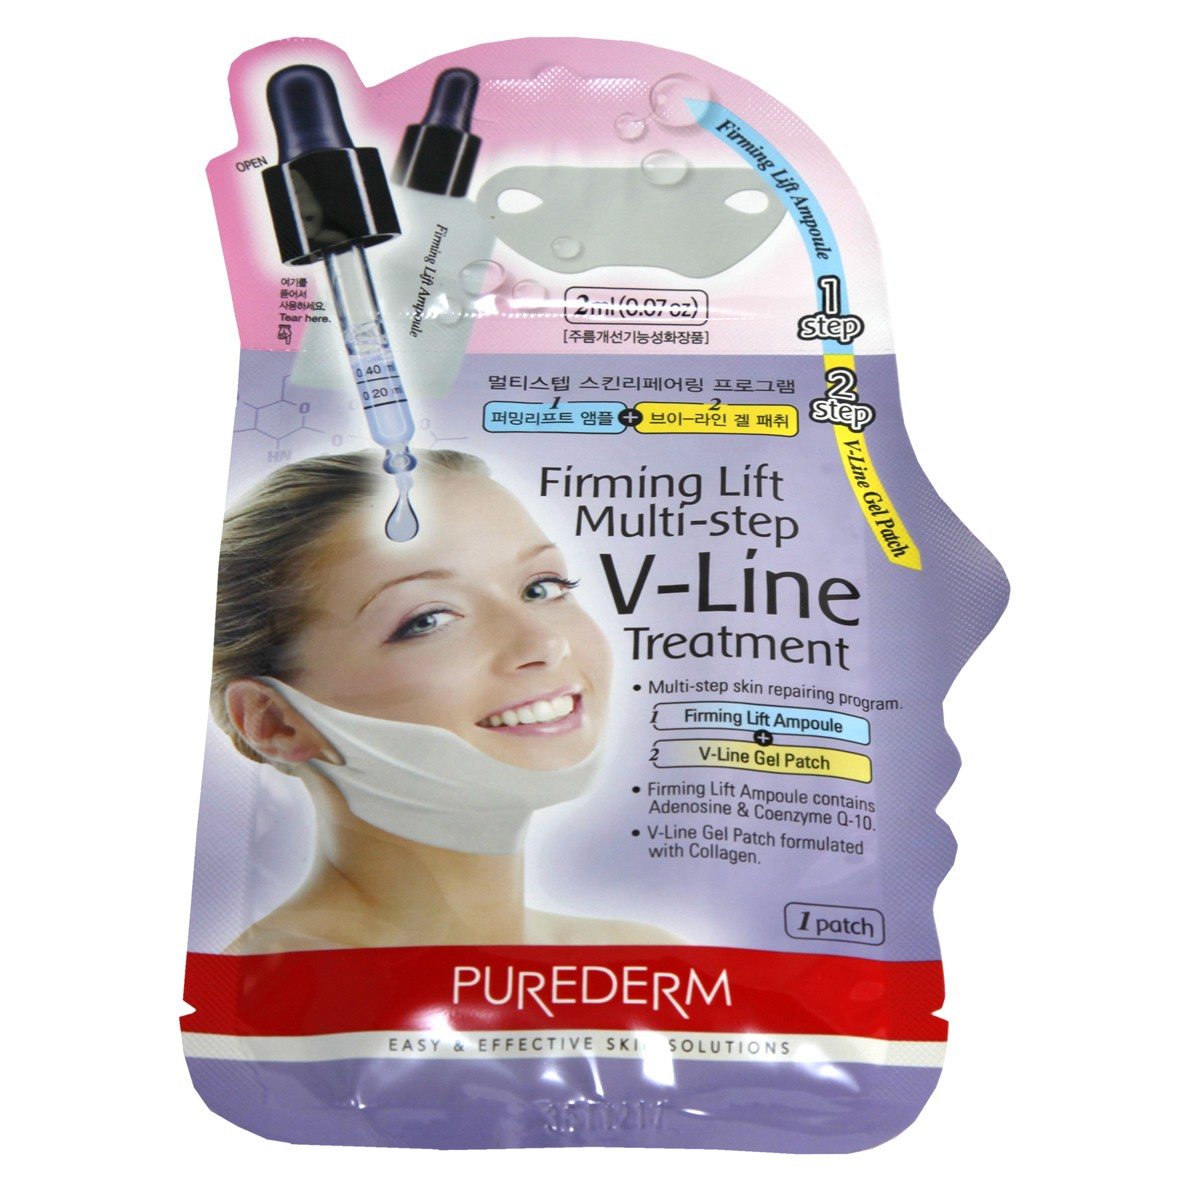 PureDerm Firming Lift Multi-Step V-Line Treatment